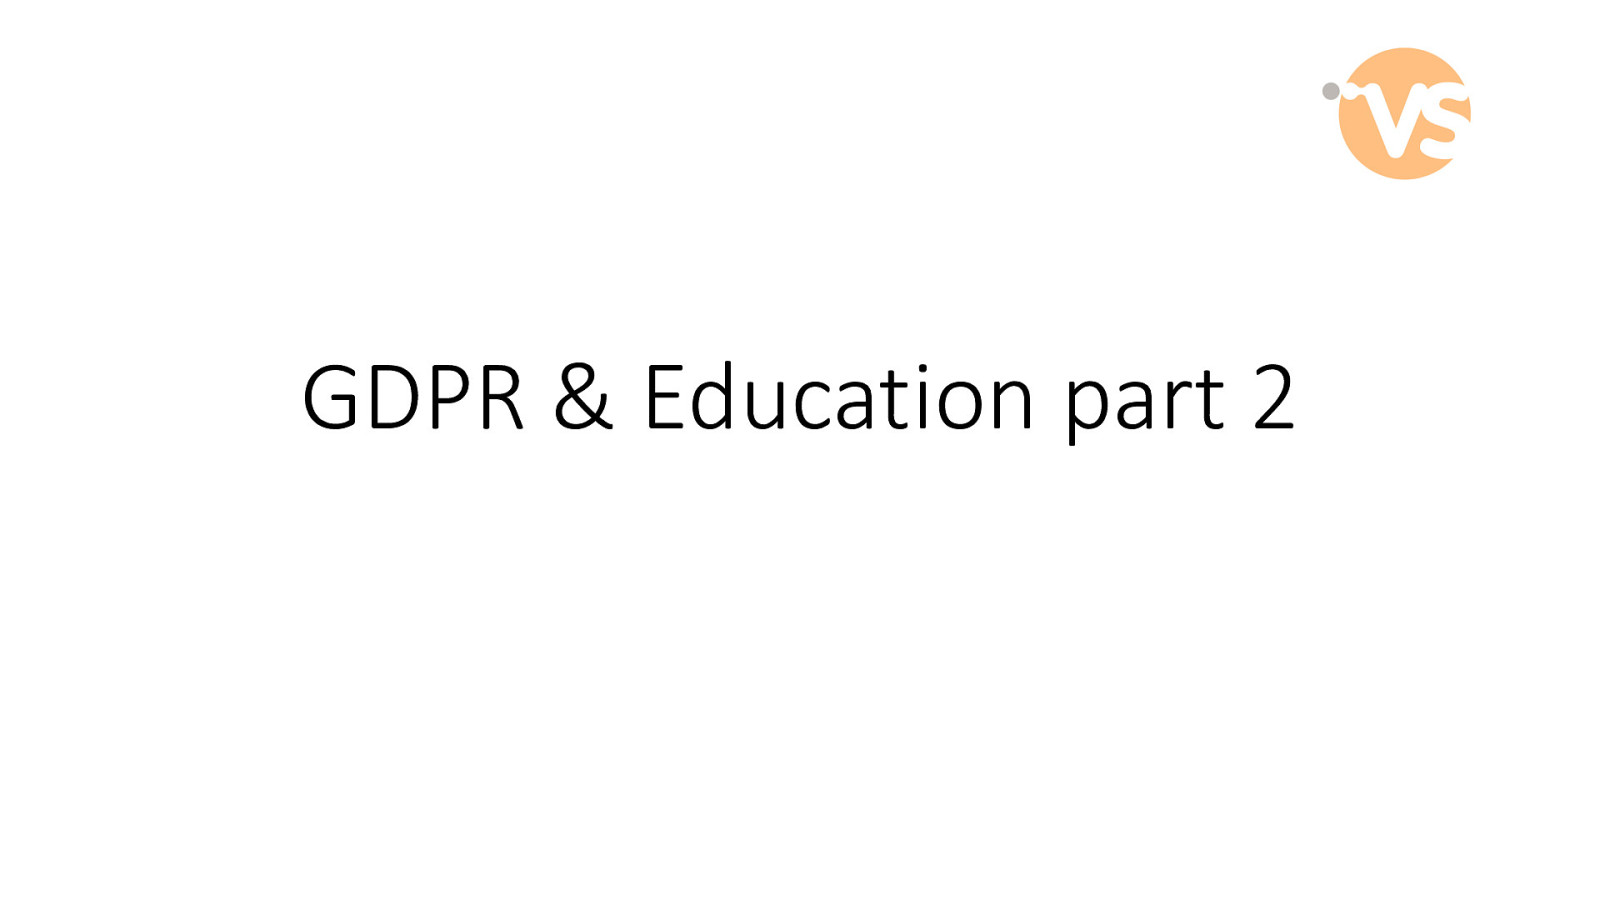 GDPR and education part 2